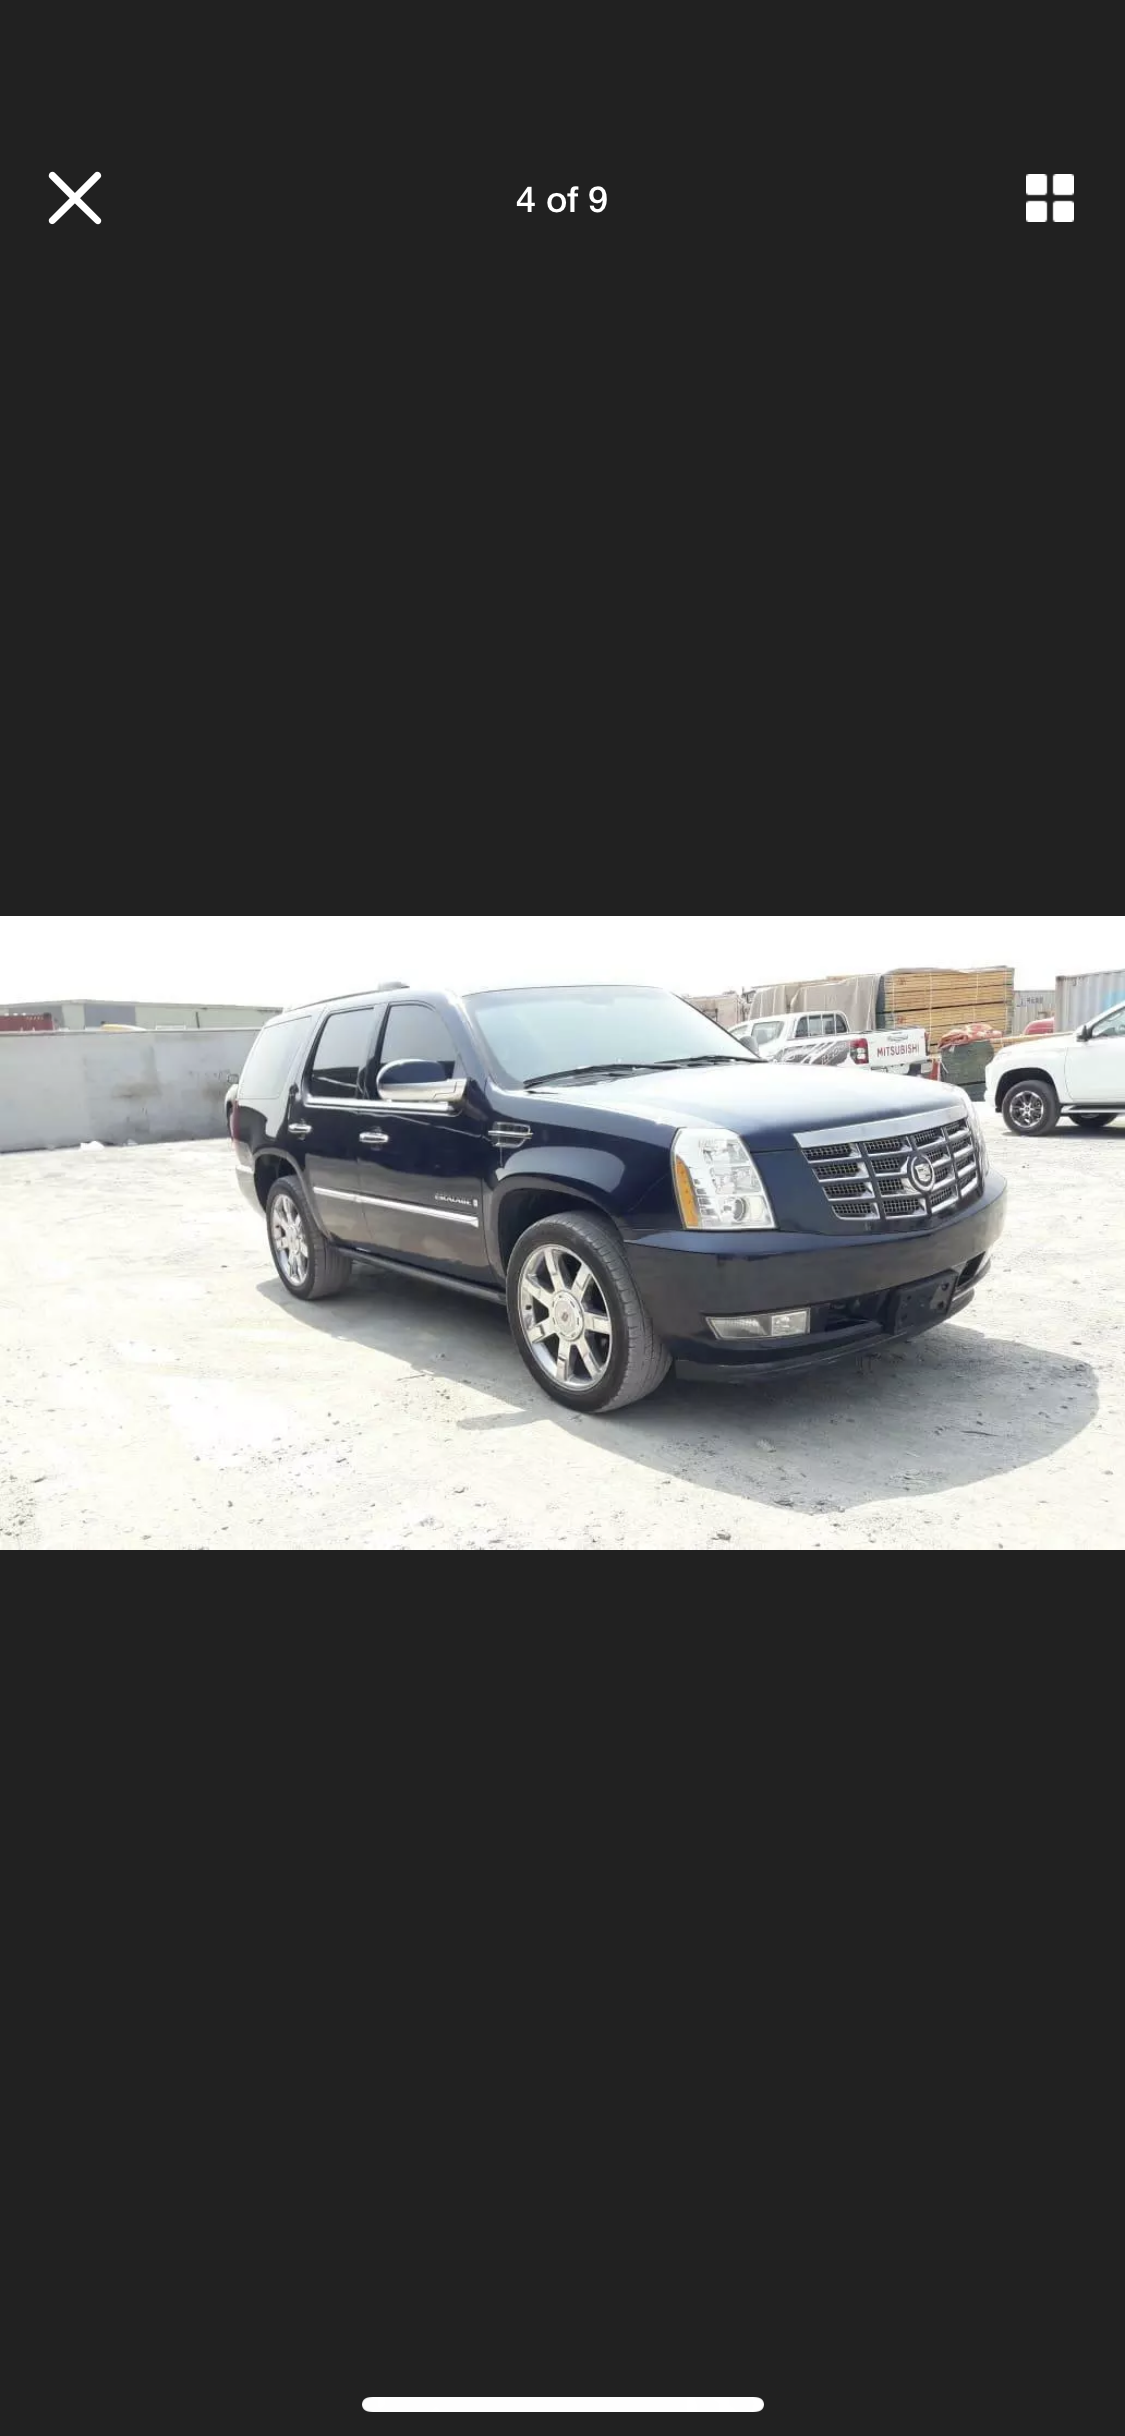 2008 CADILLAC ESCALADE 6.2 LHD LEFT HAND DRIVE FRESH IMPORT LOW M For Sale (picture 2 of 6)